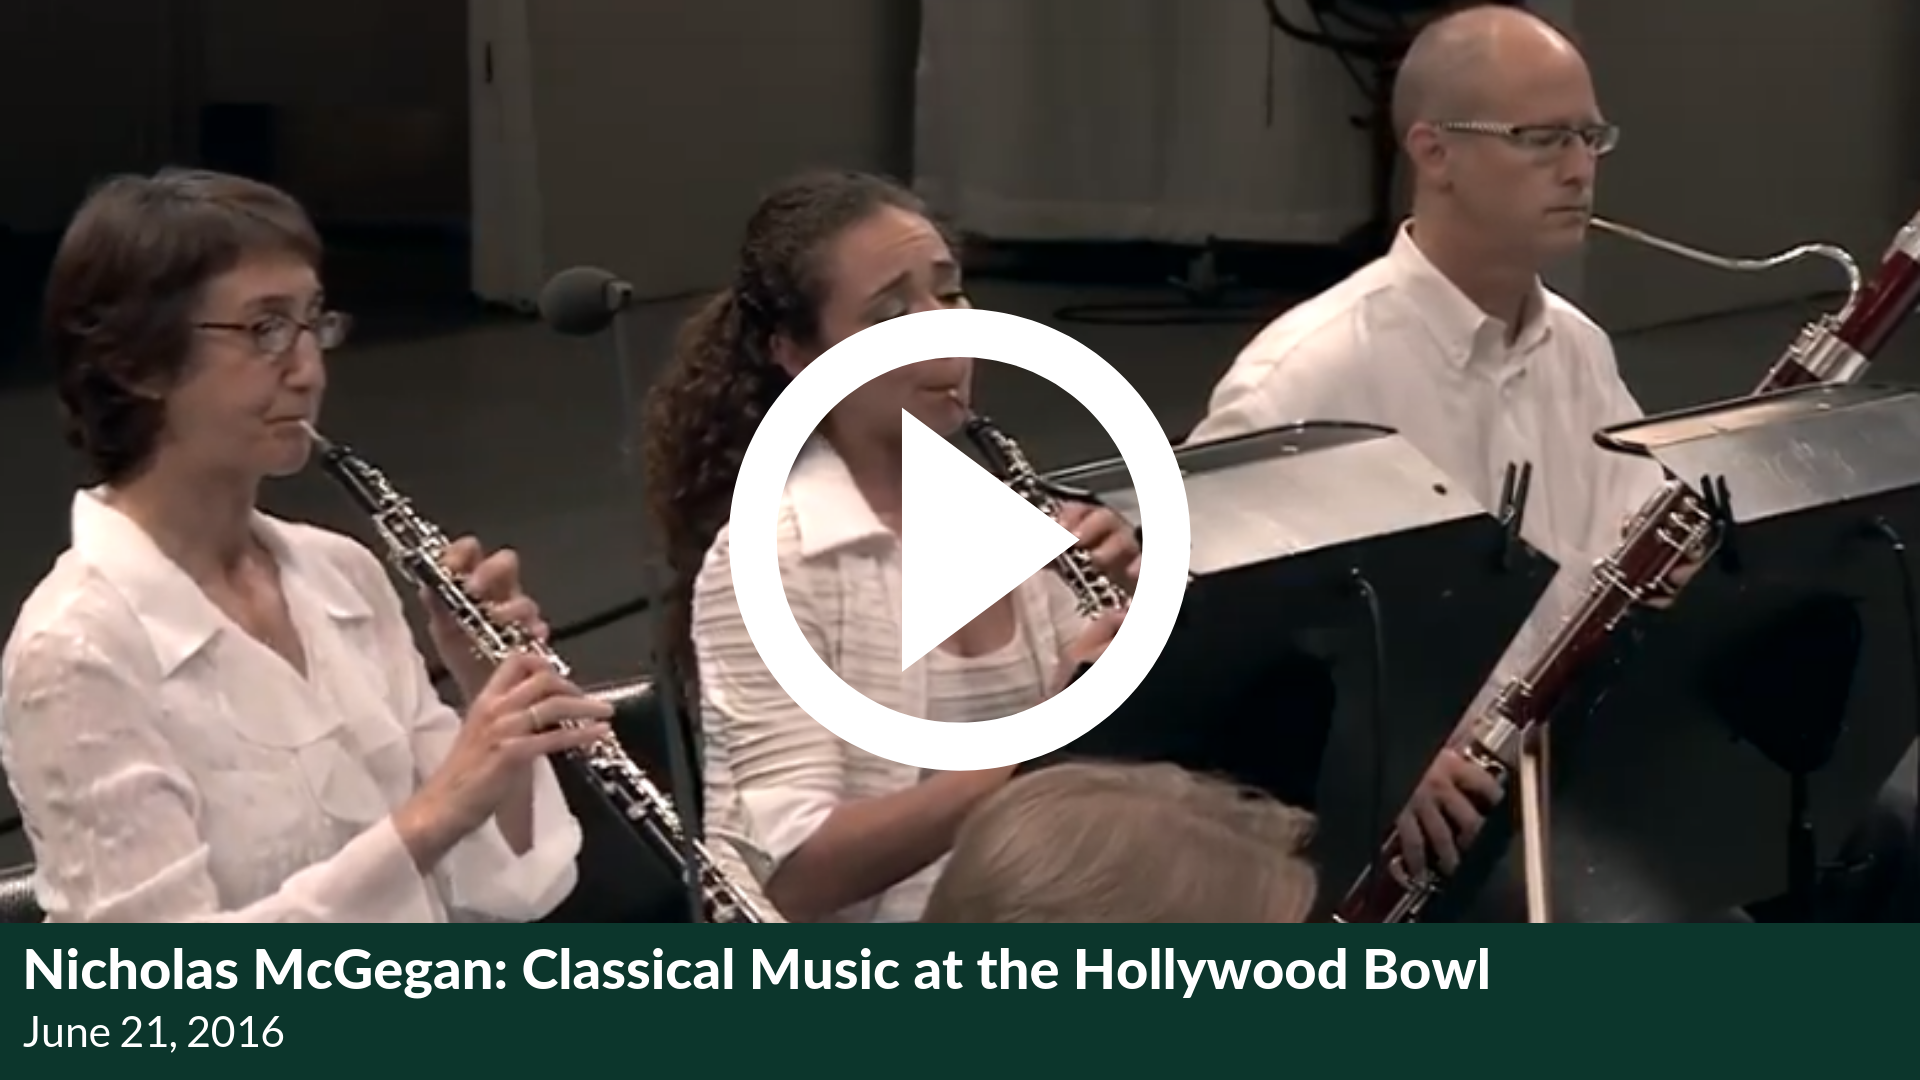 Nicholas McGegan: Classical Music at the Hollywood Bowl